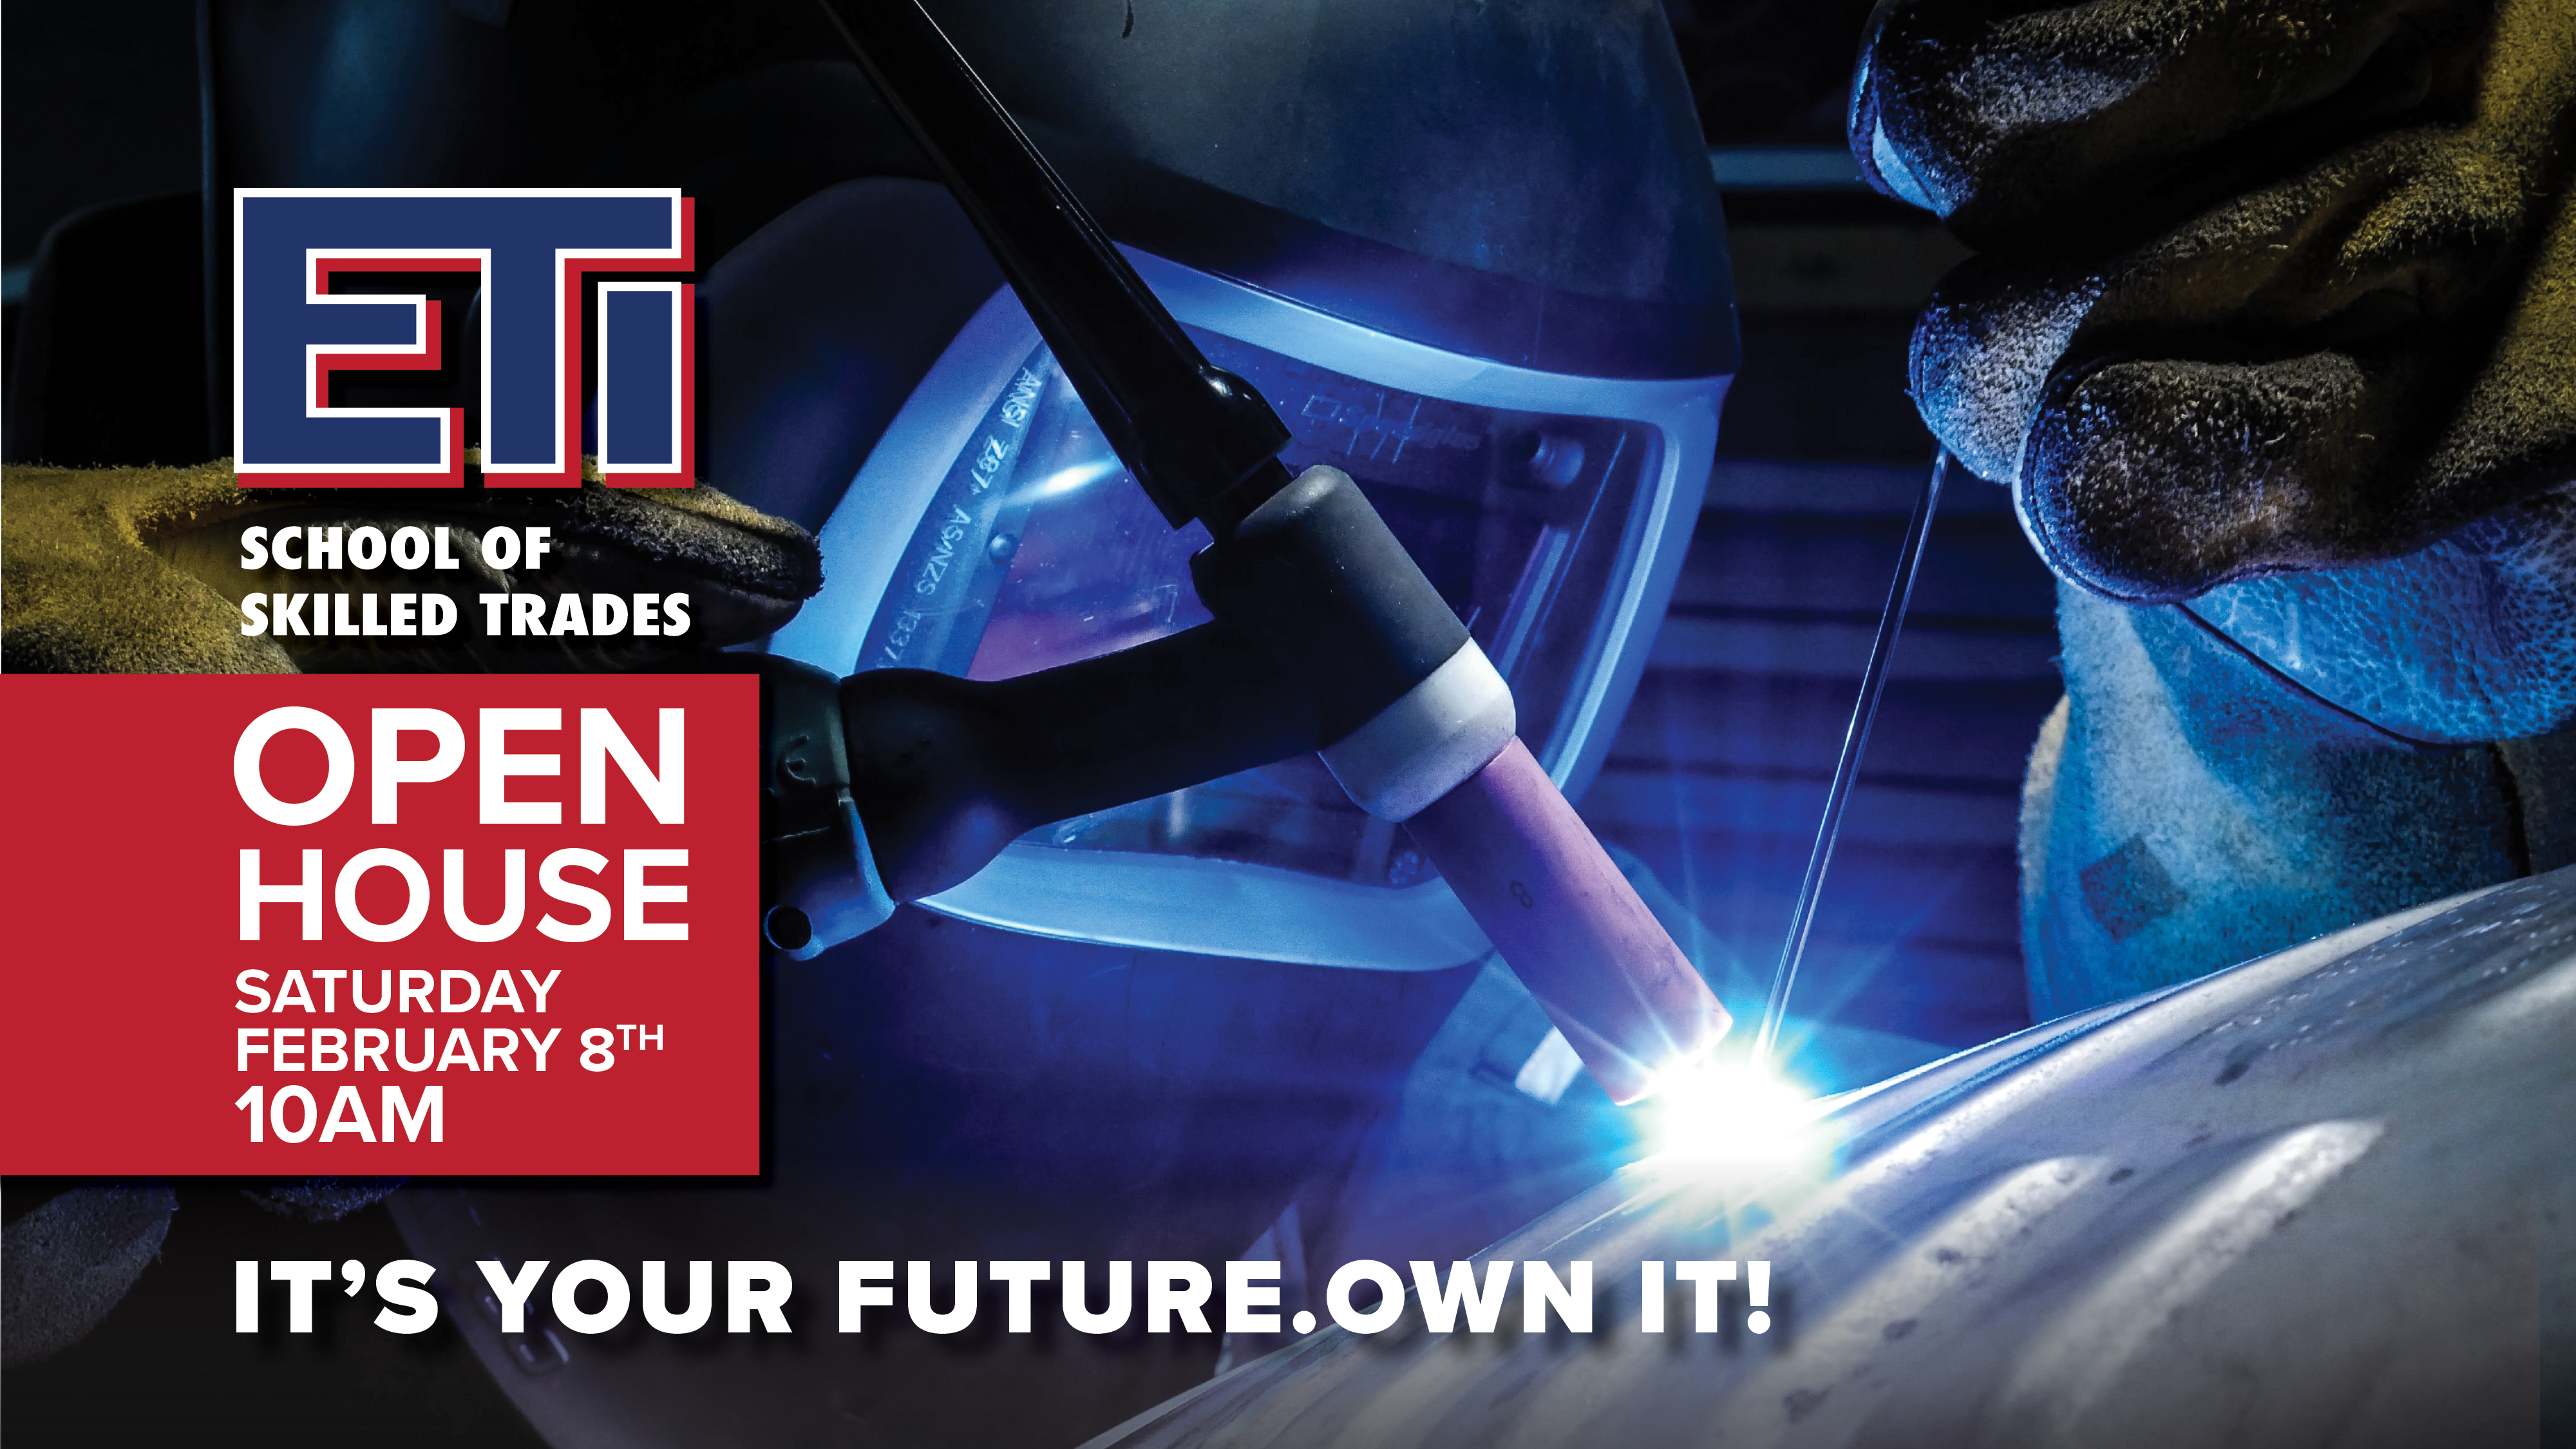 Join ETI School of Skilled Trades for their Open House on February 8th, 2020 at 10am